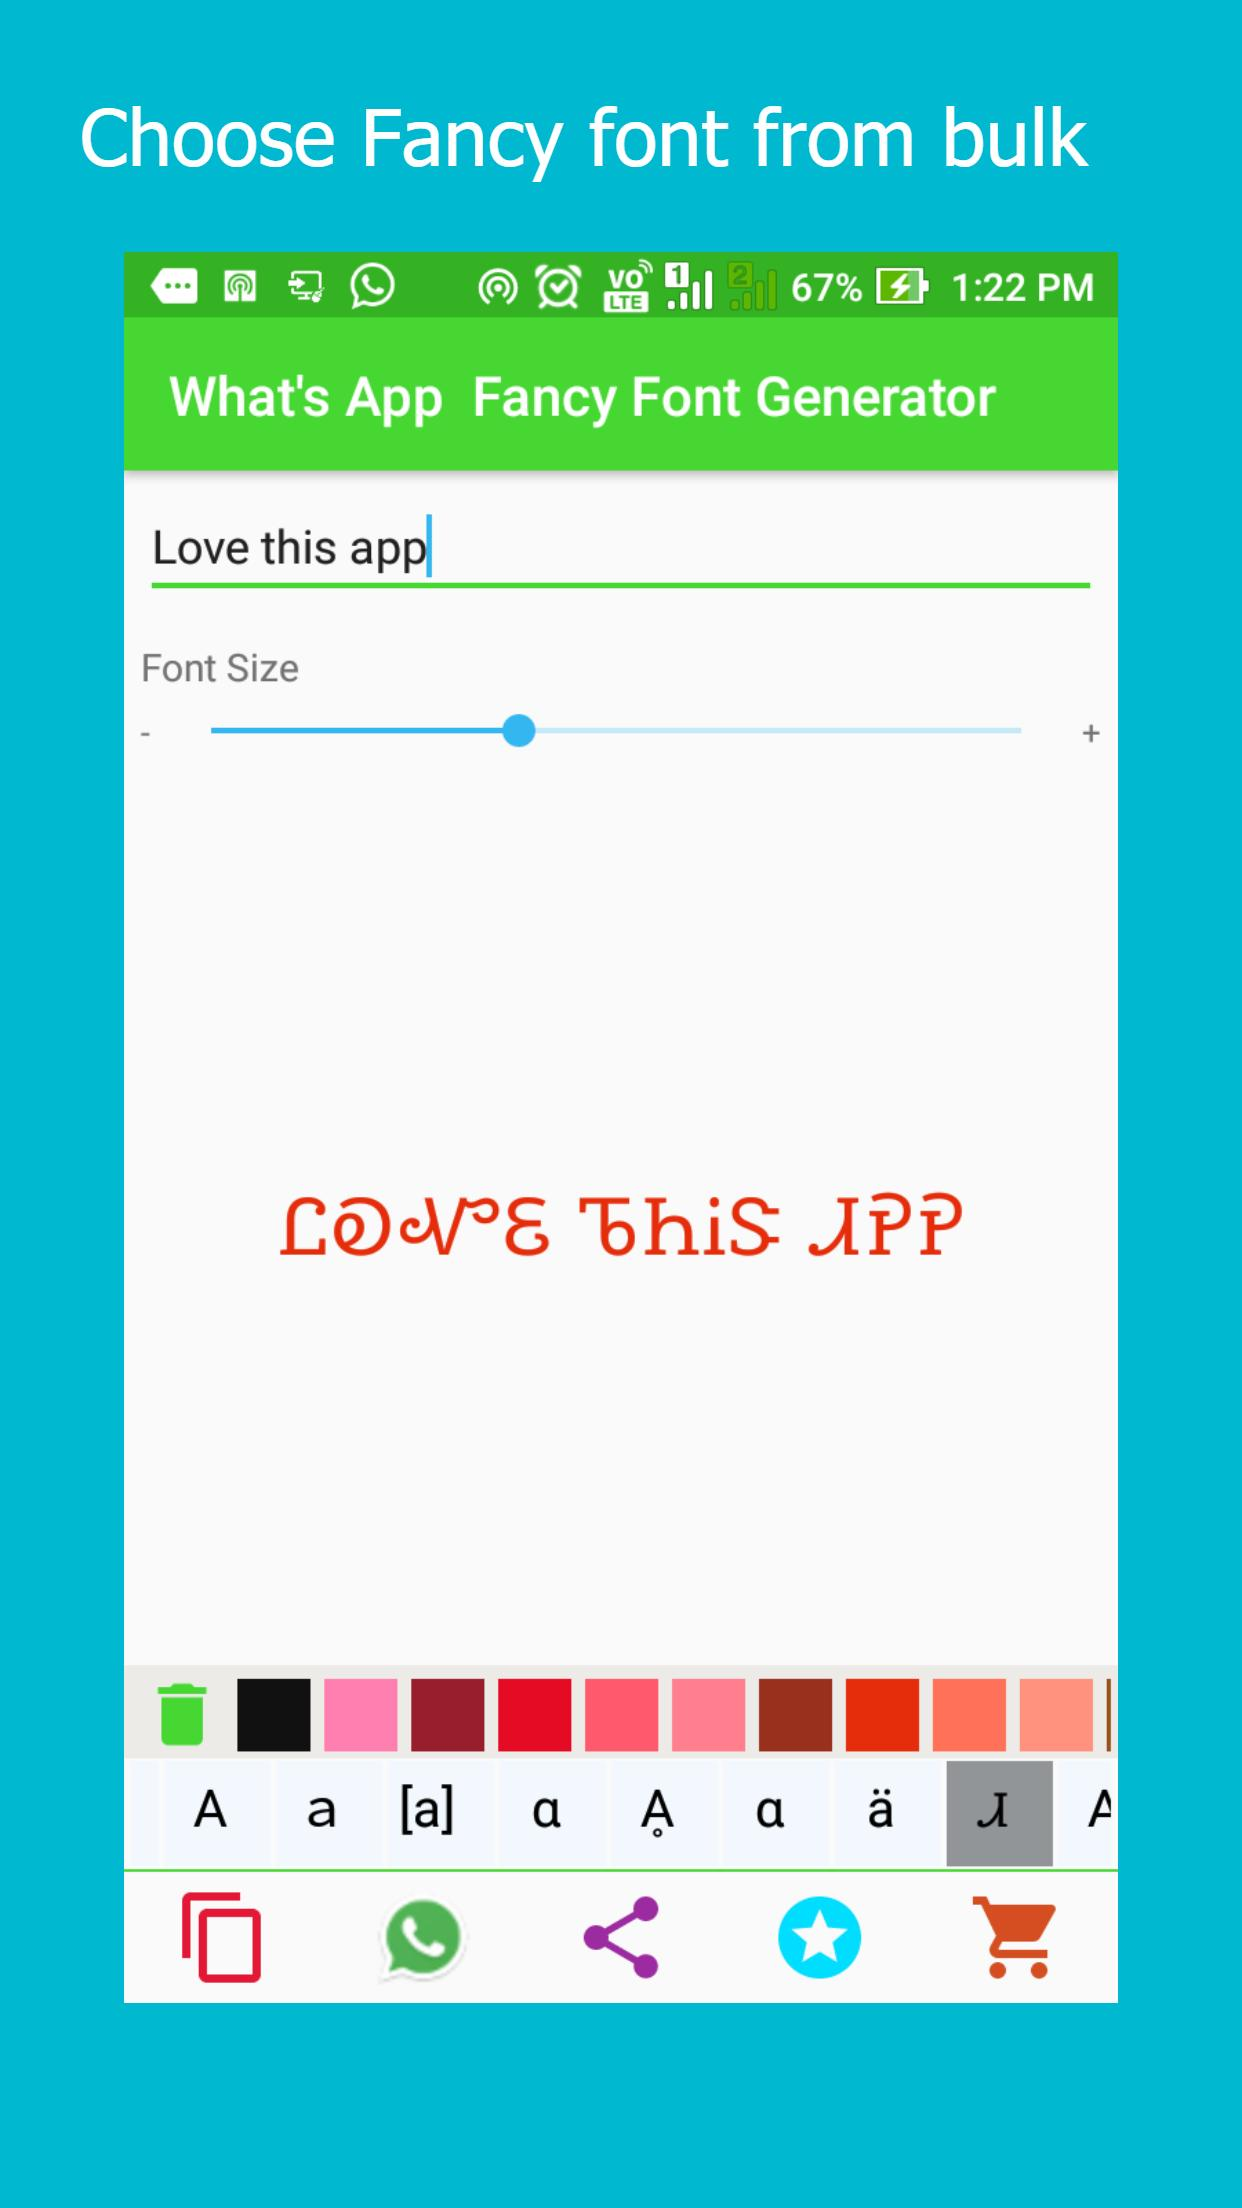 WhatsApp Fancy Font Generator for Android - APK Download